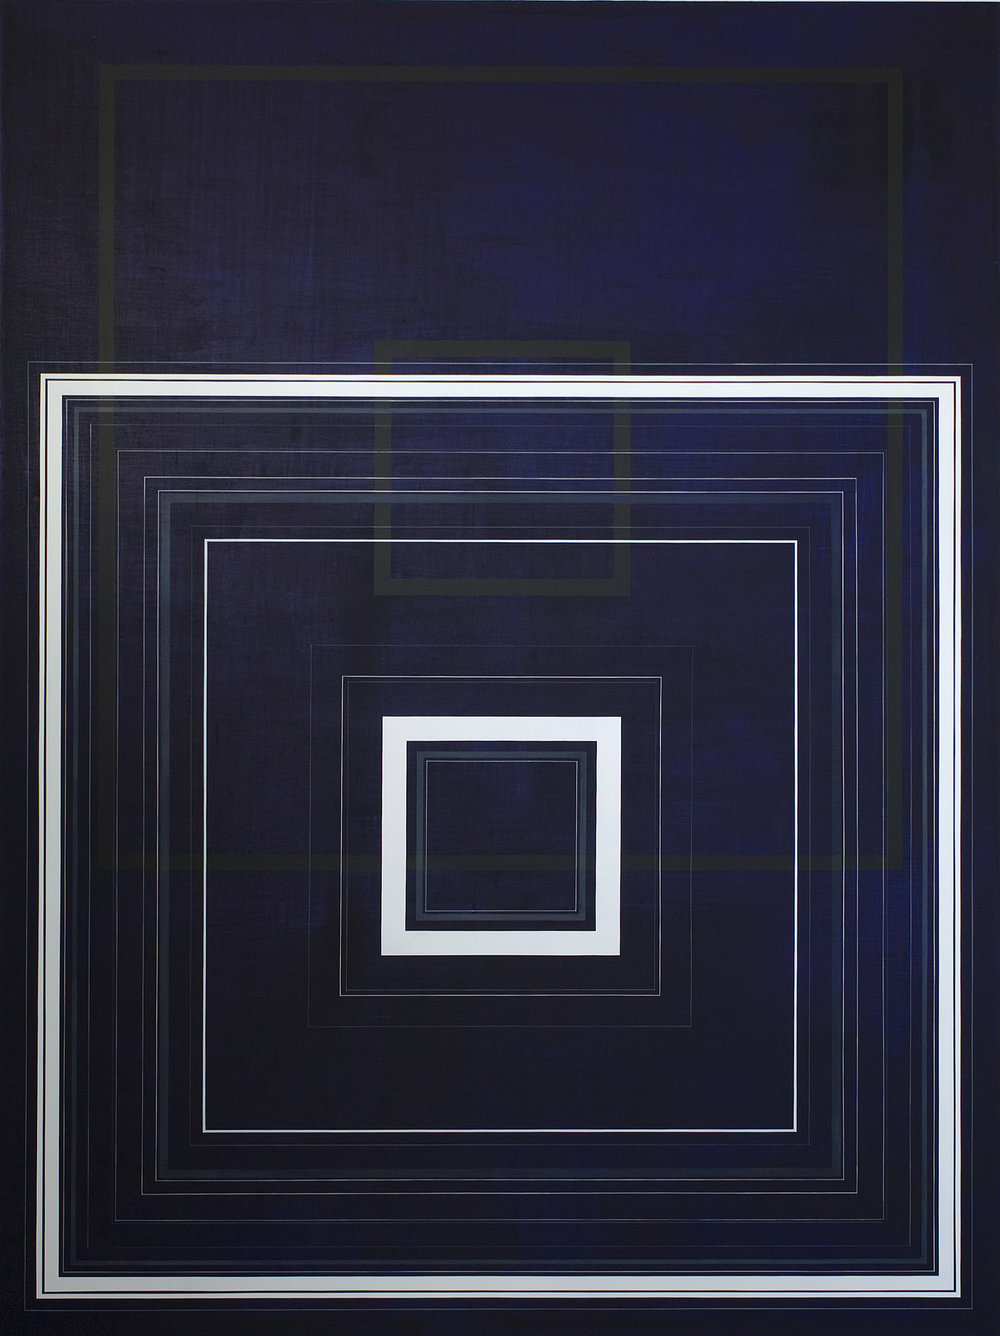 Black Blue and Square, 2009, 80x60